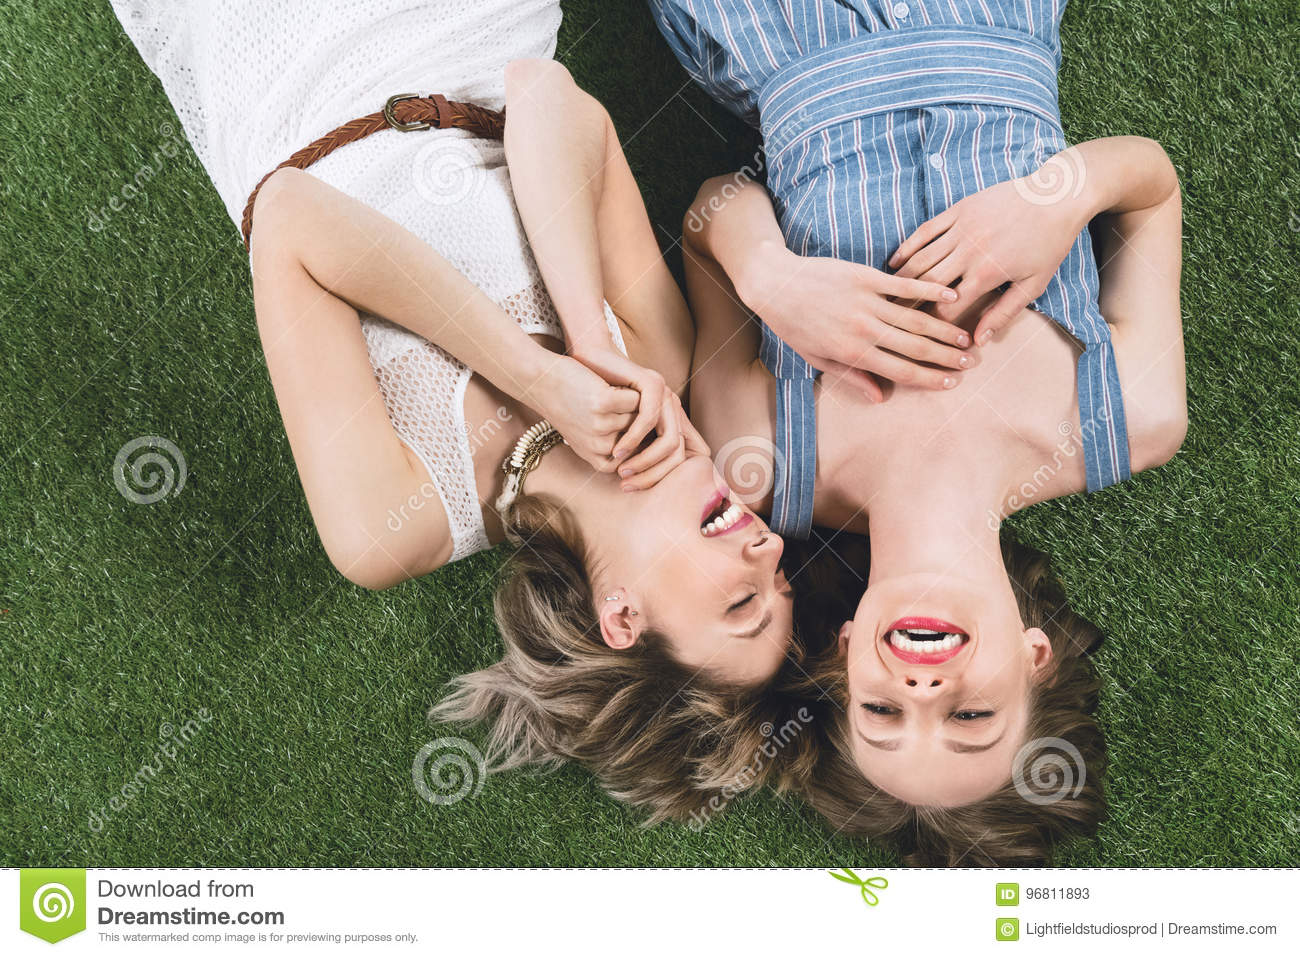 Lesbian couple laughing while lying together on the grass